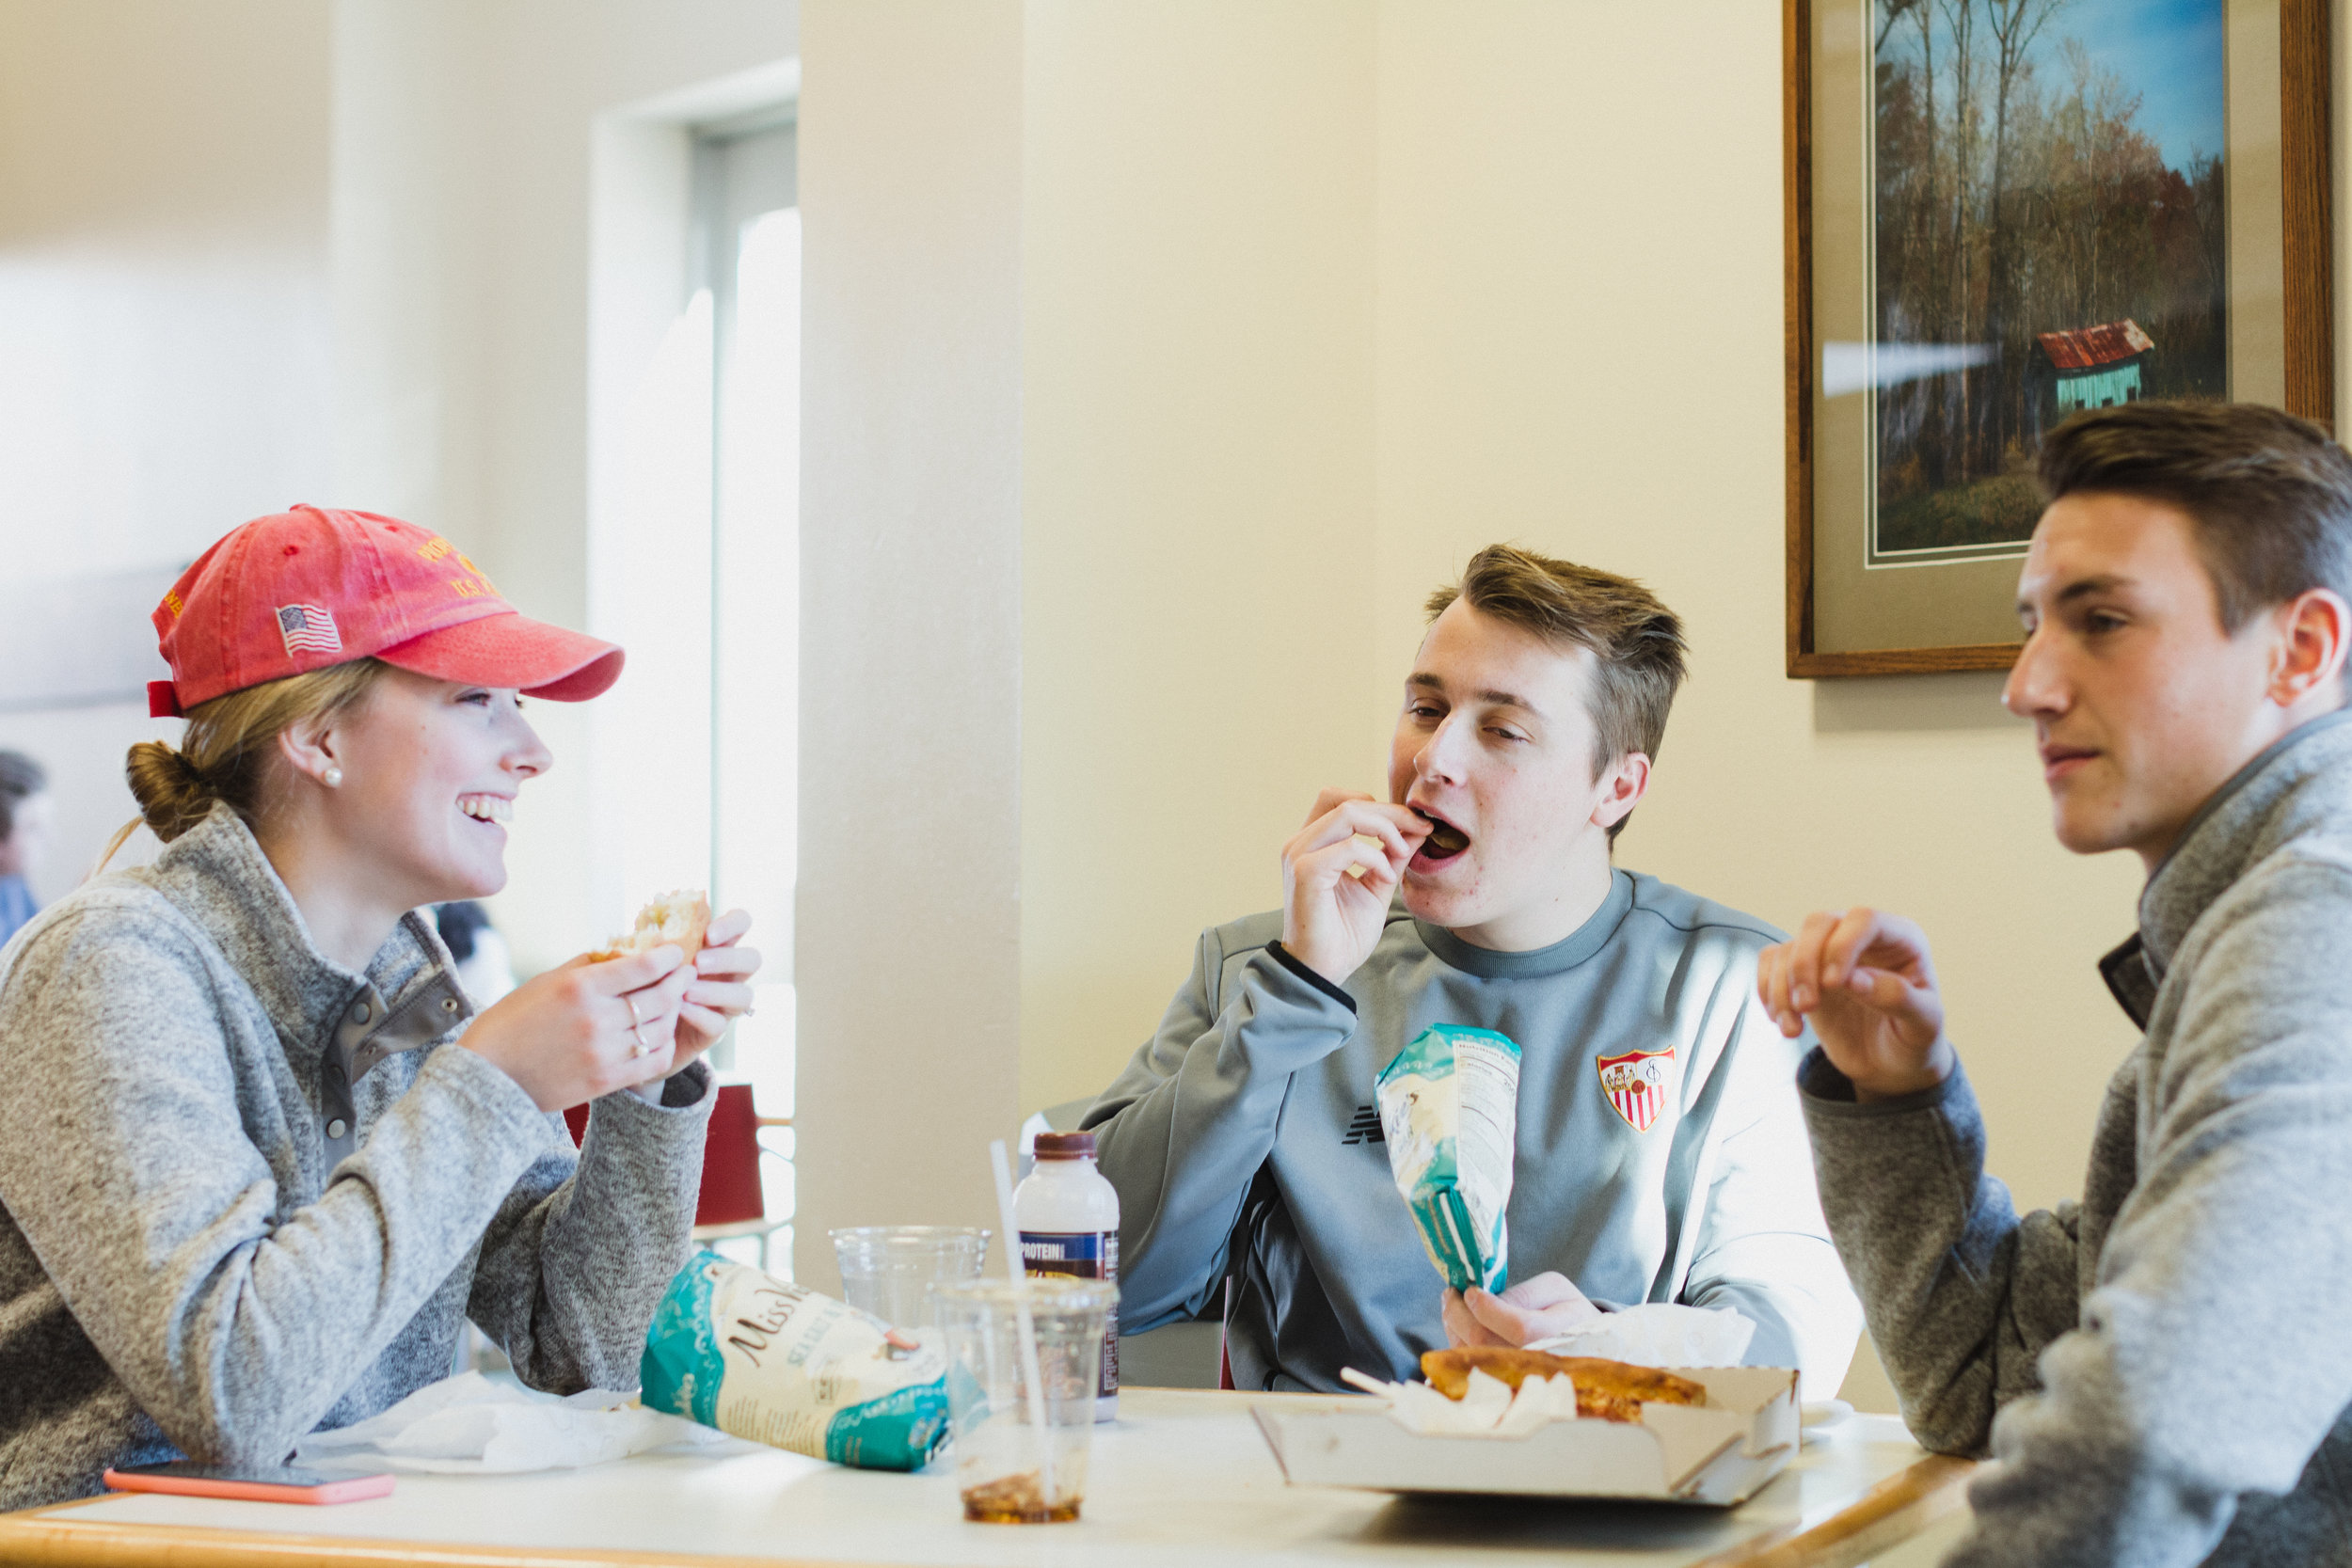 Students enjoy hot food at the Grille, a dining option at Dordt located in the Campus Center.